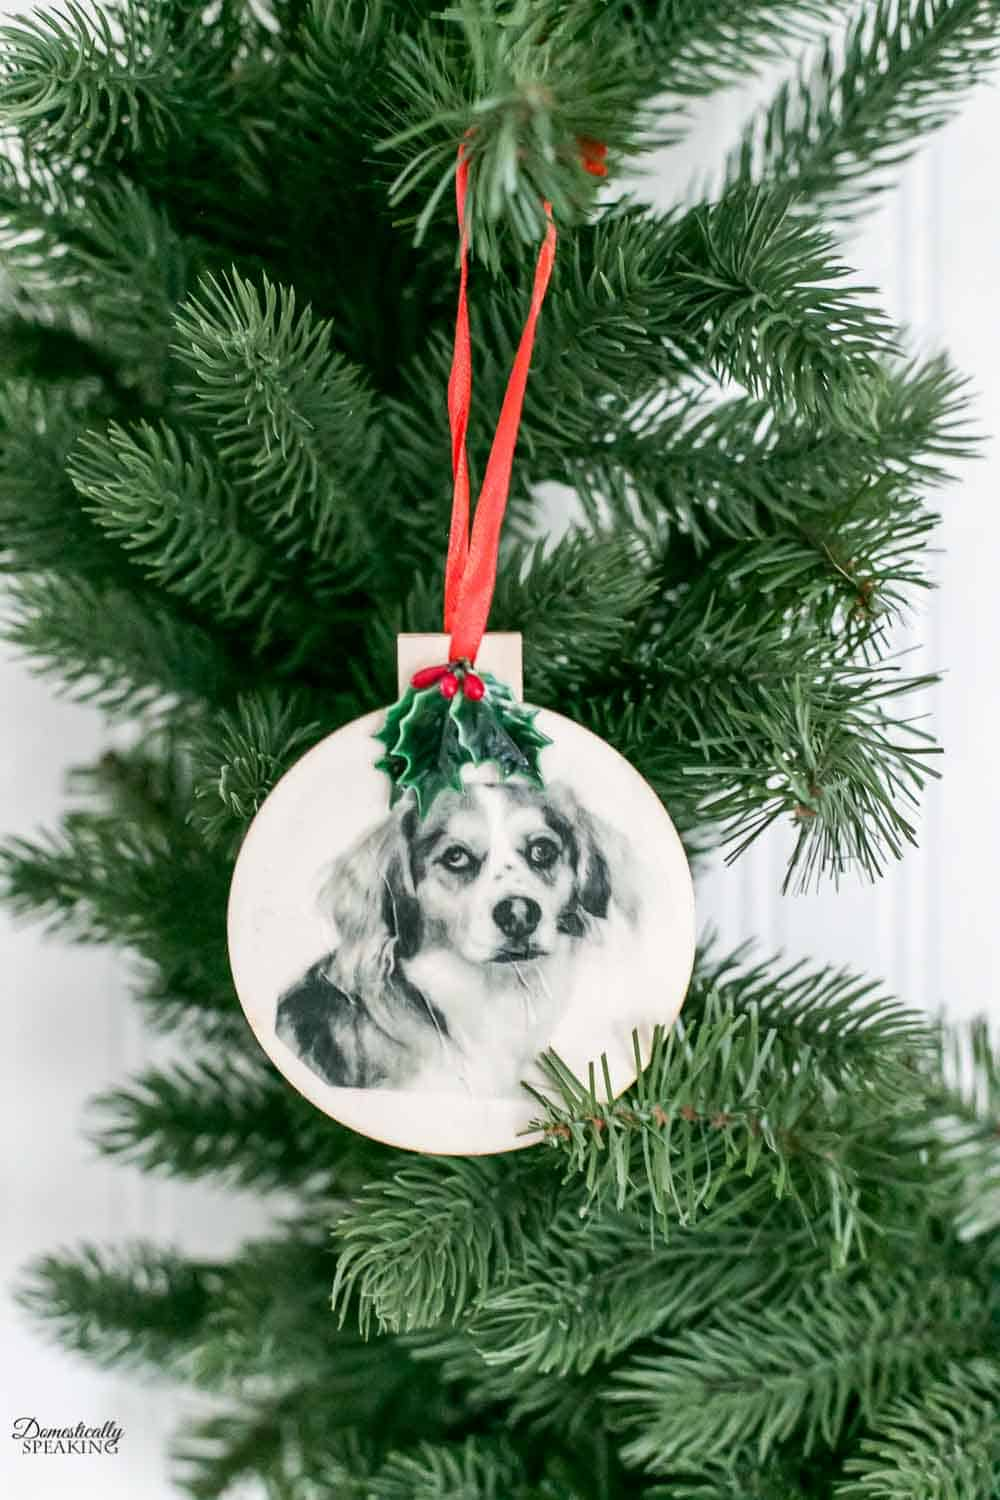 Our dog Ona's image printed on tissue paper to create a Christmas ornament.